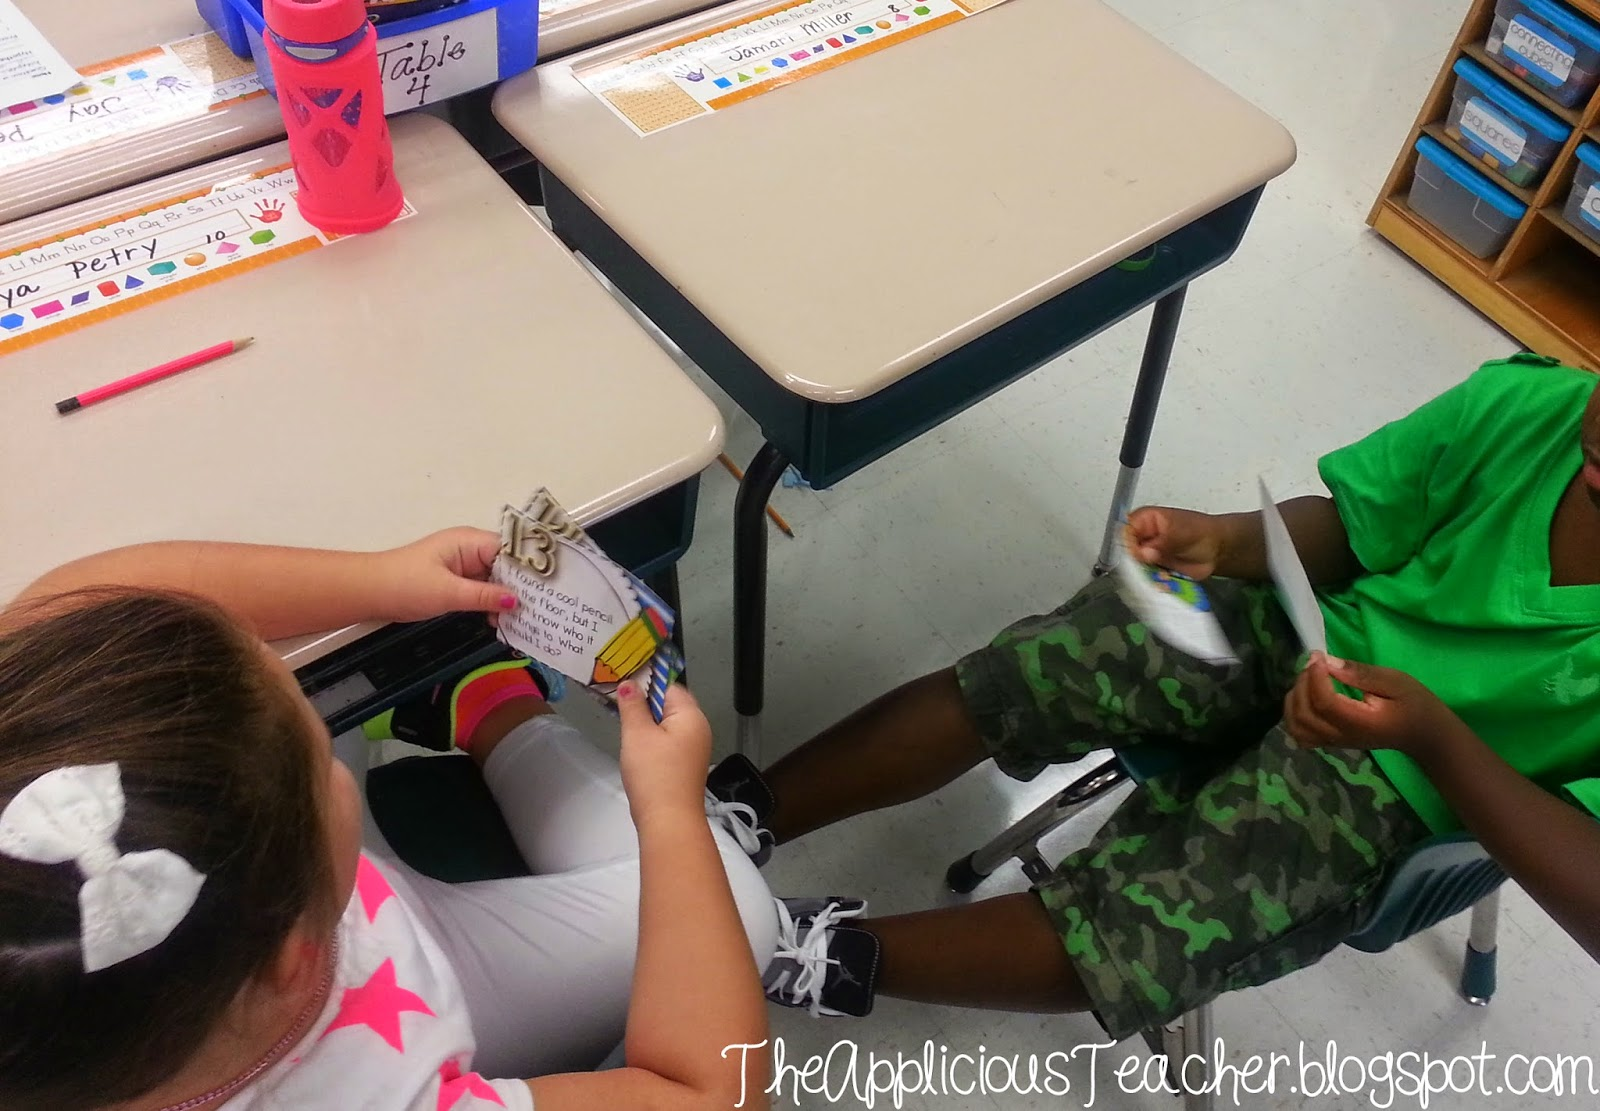 http://www.teacherspayteachers.com/Product/School-Days-10-Literacy-Centers-for-Back-to-School-and-Beyond-1341886